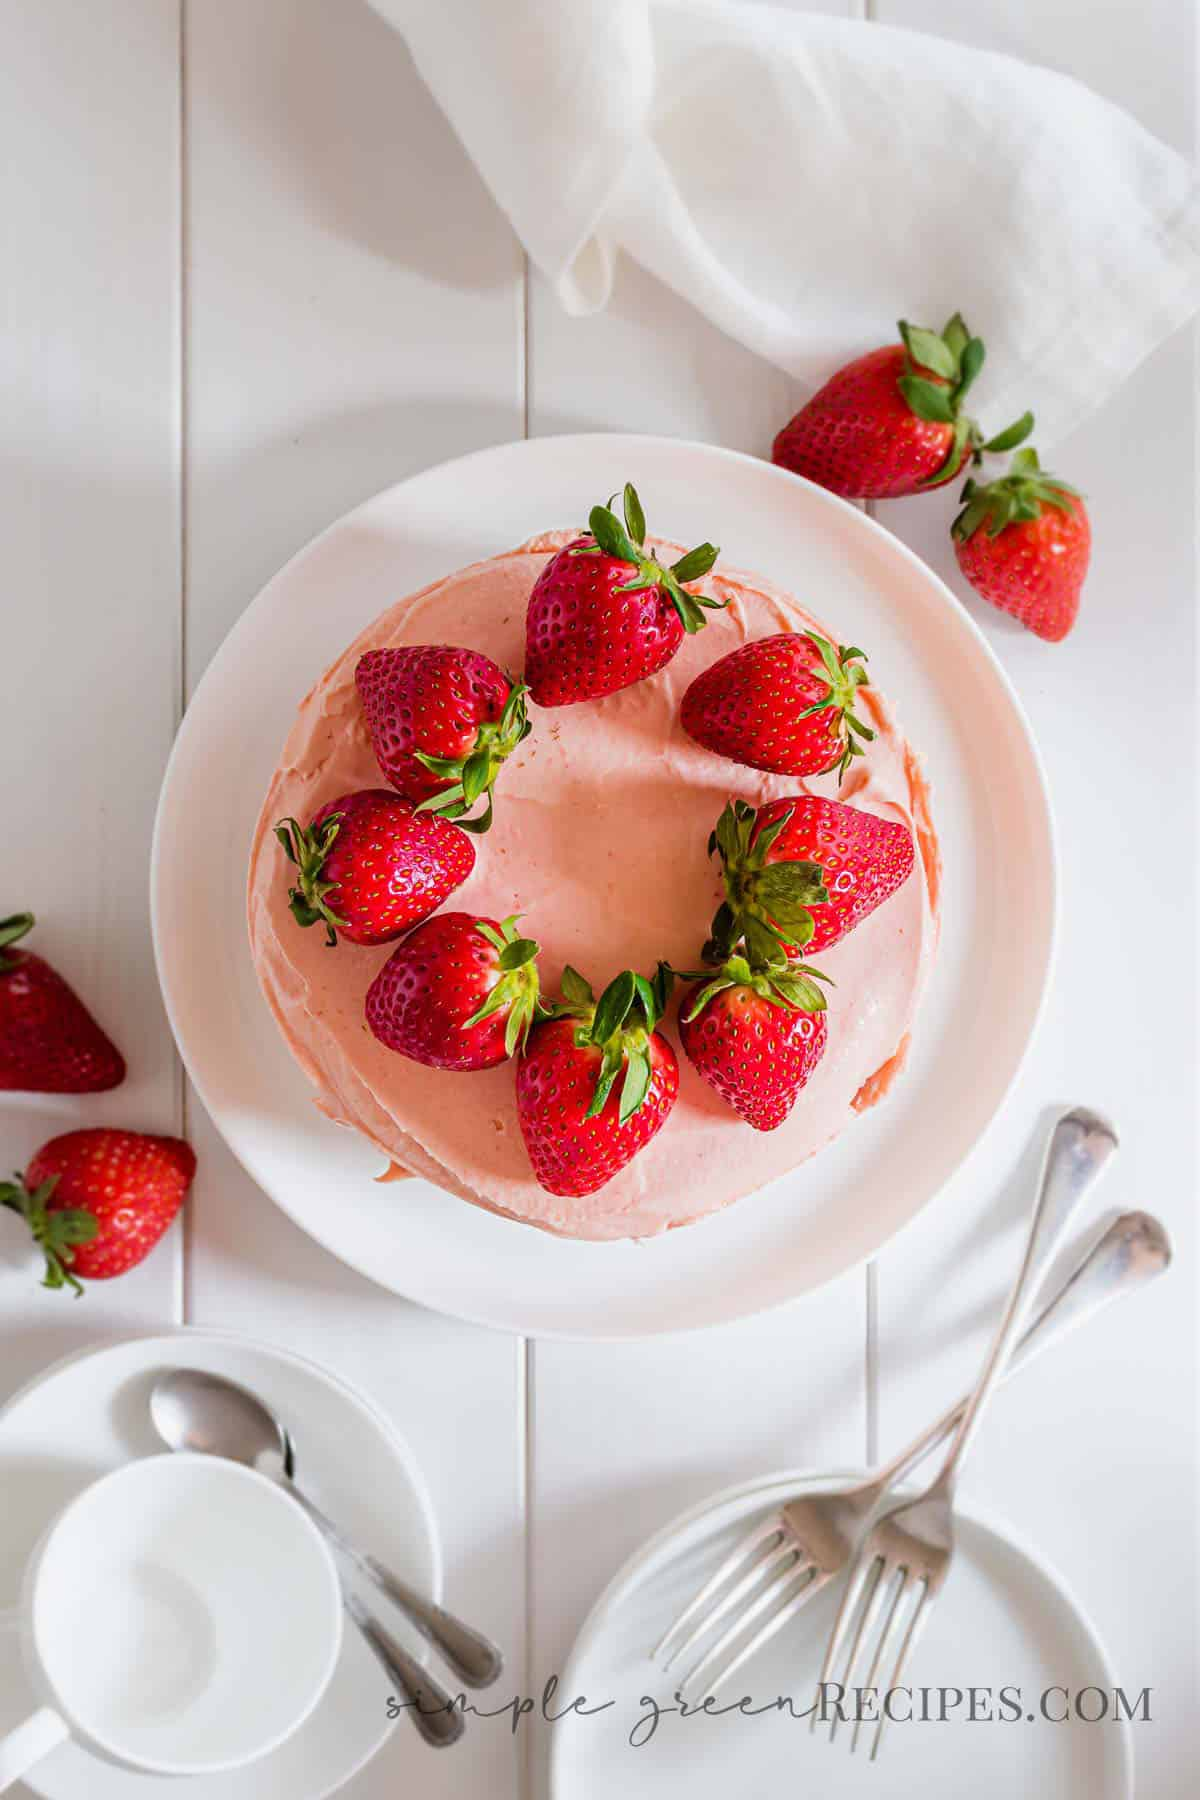 Strawberry cake on a white plate, topped with strawberries, next to dessert plates and coffee mugs.